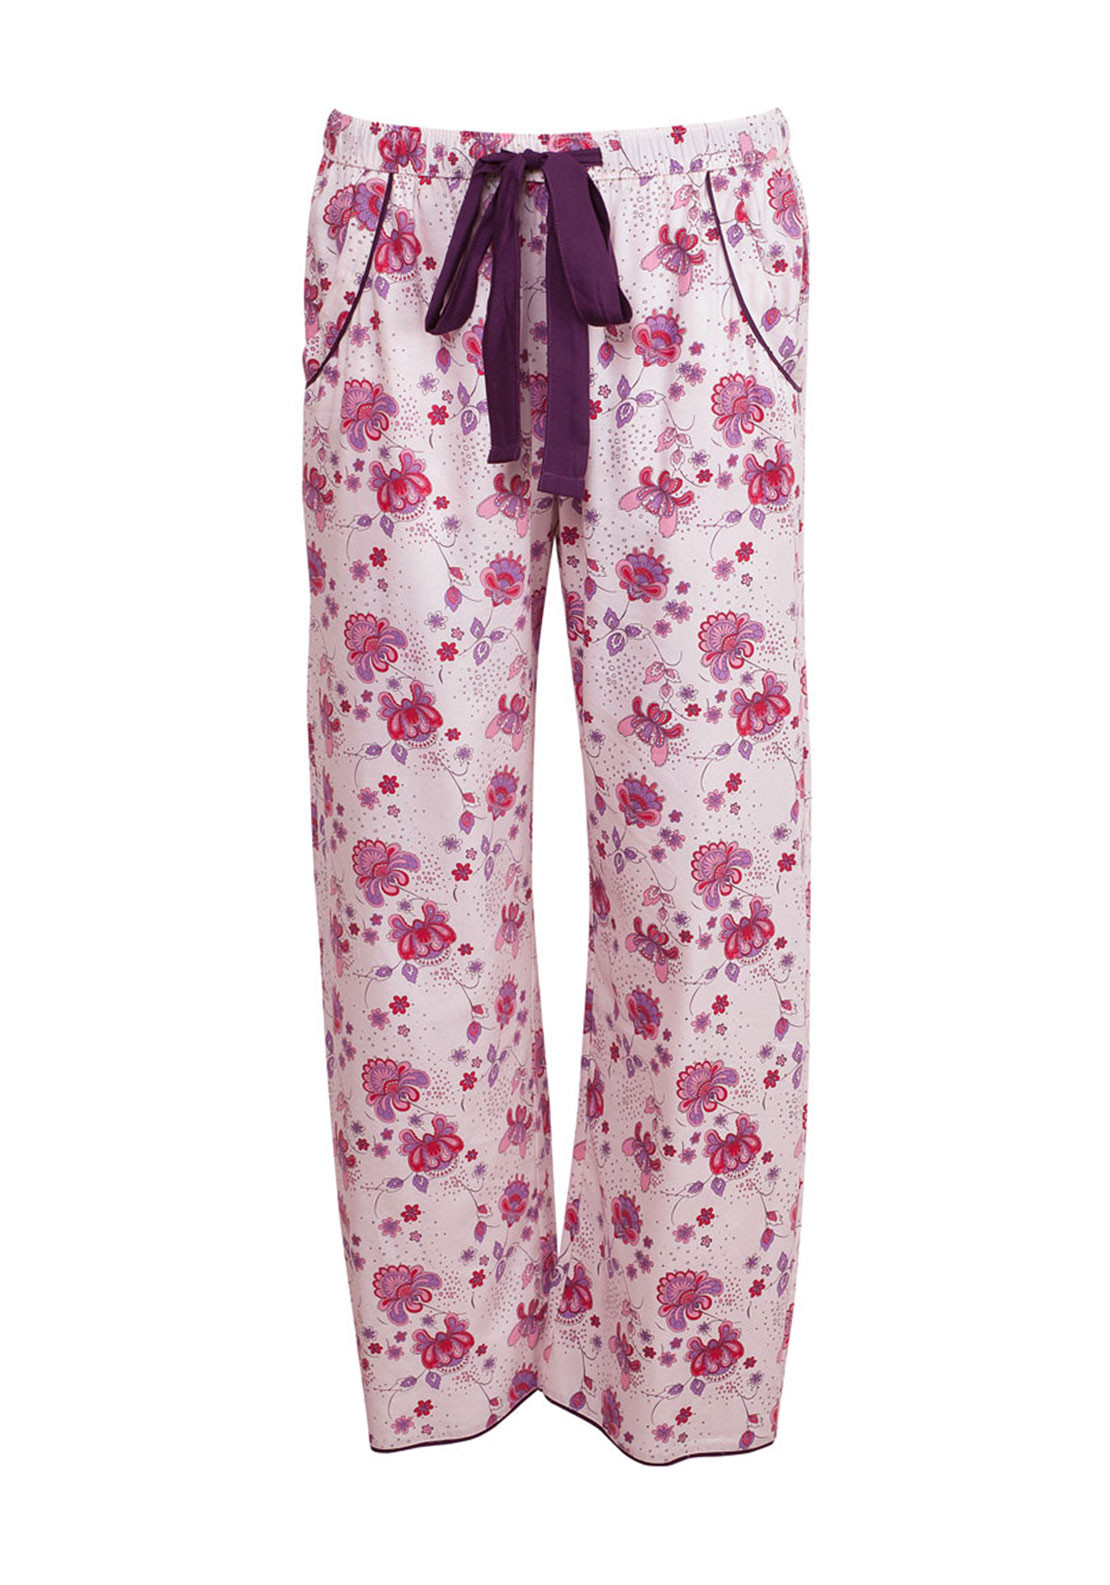 Cyberjammies Purple Haze Pyjama Bottoms, Cream